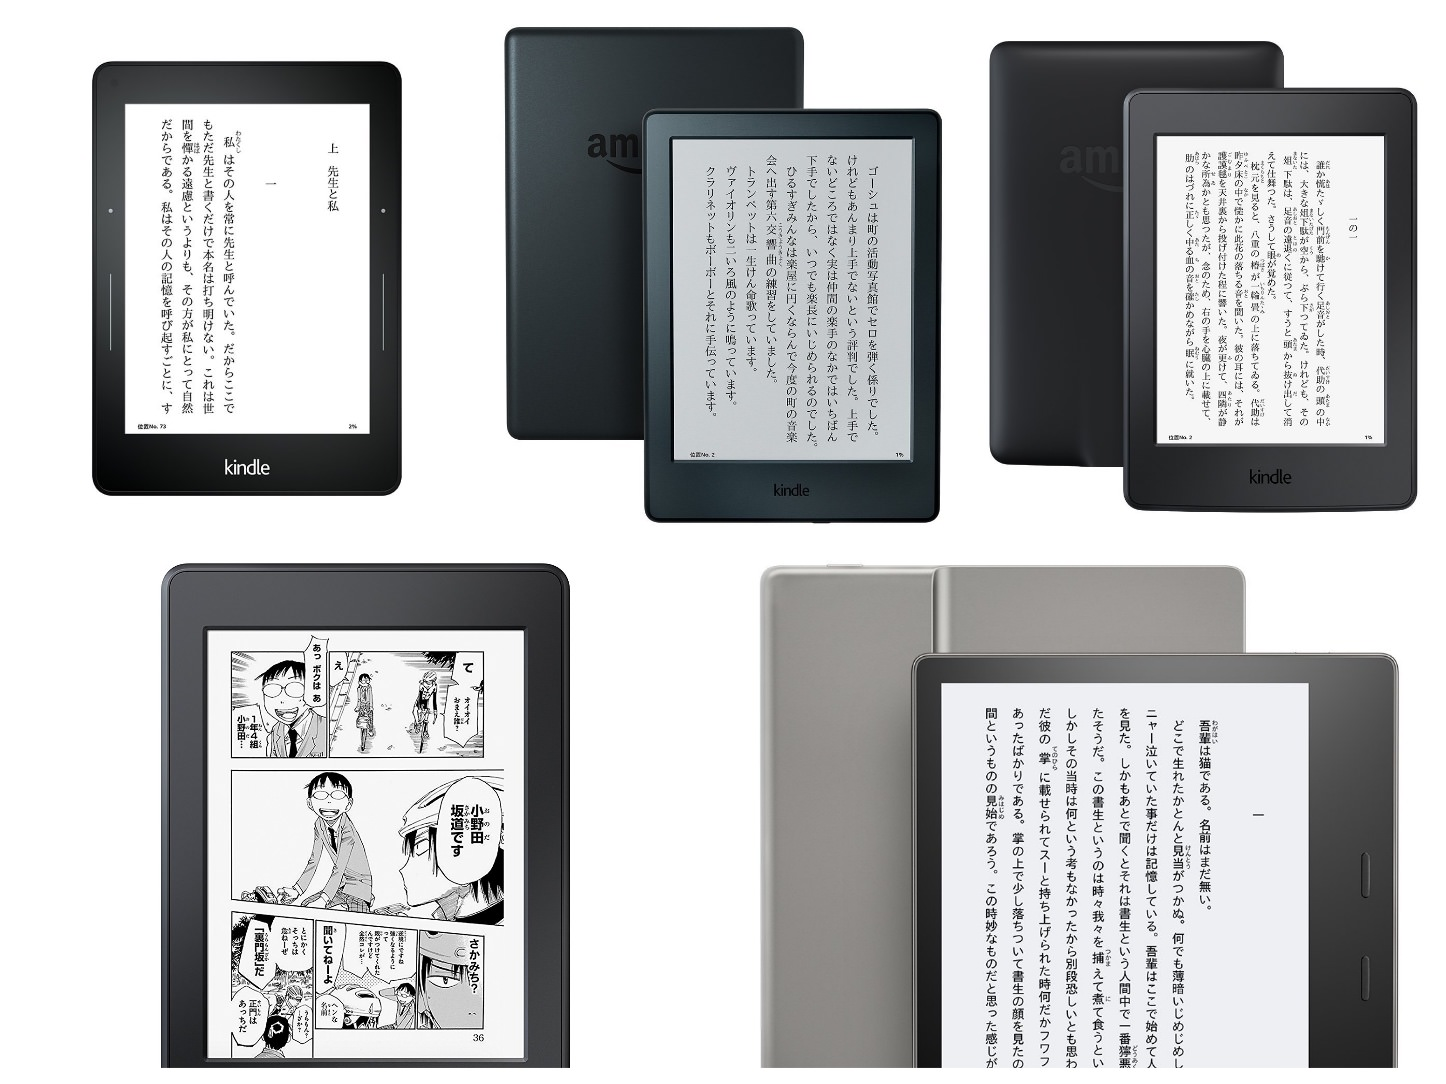 Kindle-Tablet-Sale.jpg